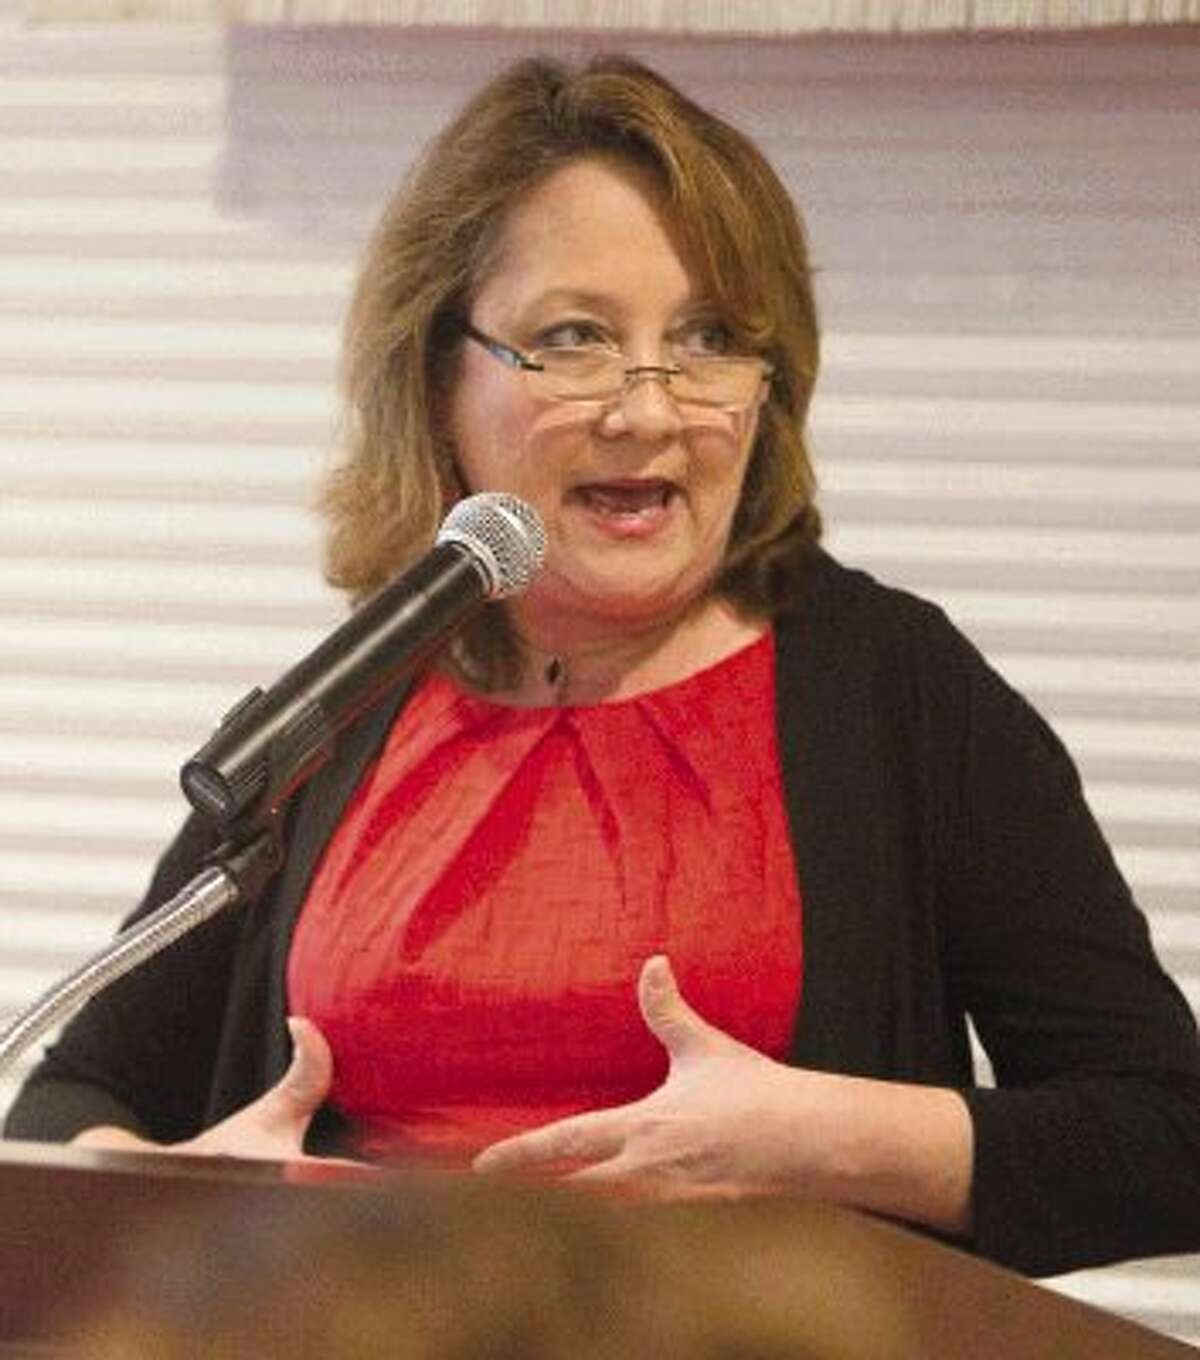 Cecilia Abbott, wife of Attorney General and gubernatorial candidate Greg Abbott, speaks at the Montgomery County Republican Women's monthly luncheon Thursday.